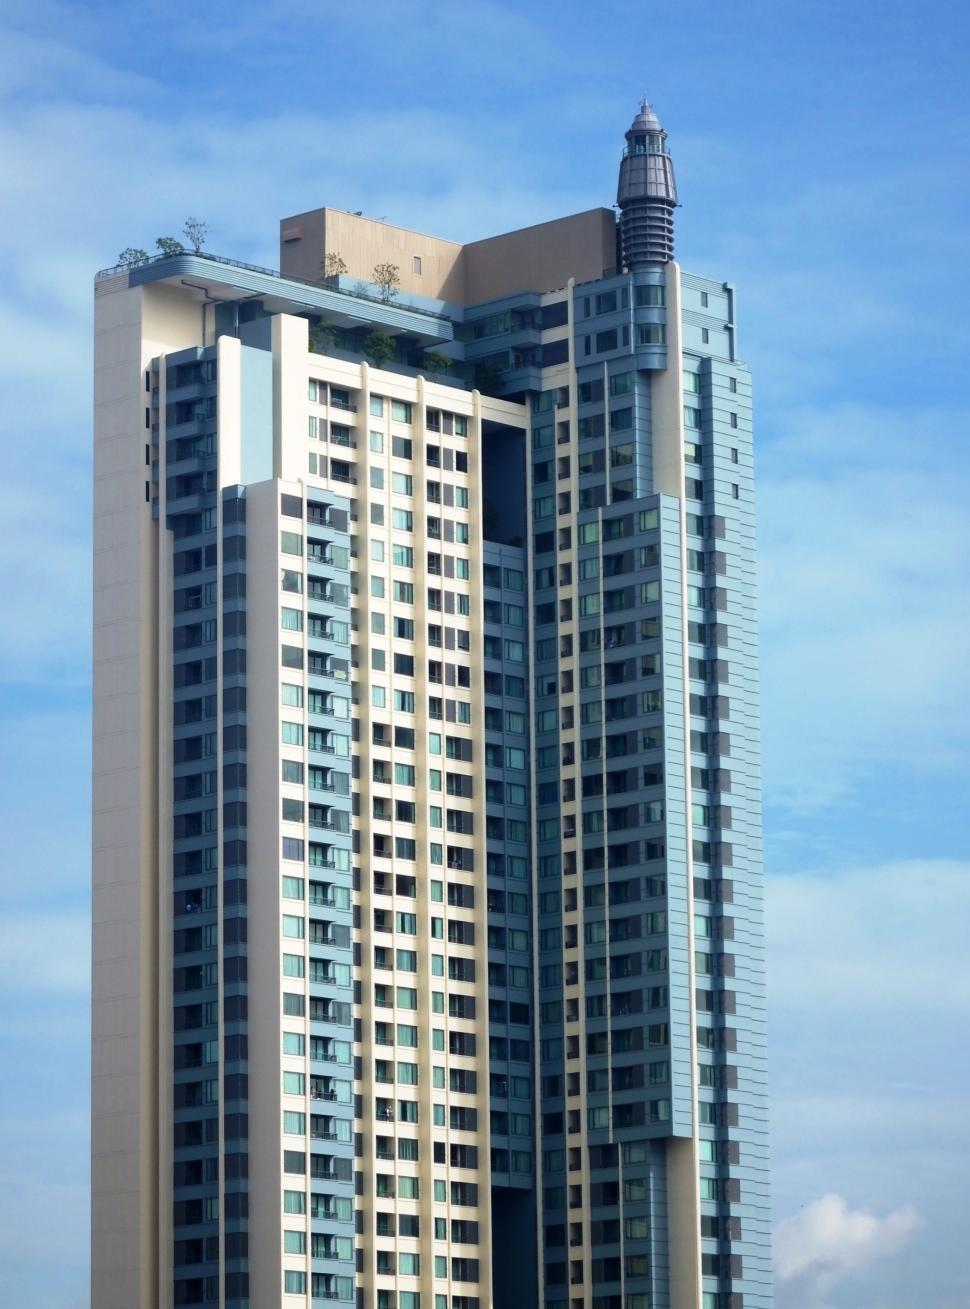 Download Free Stock HD Photo of Generic high-rise condominium building against a blue sky background  Online